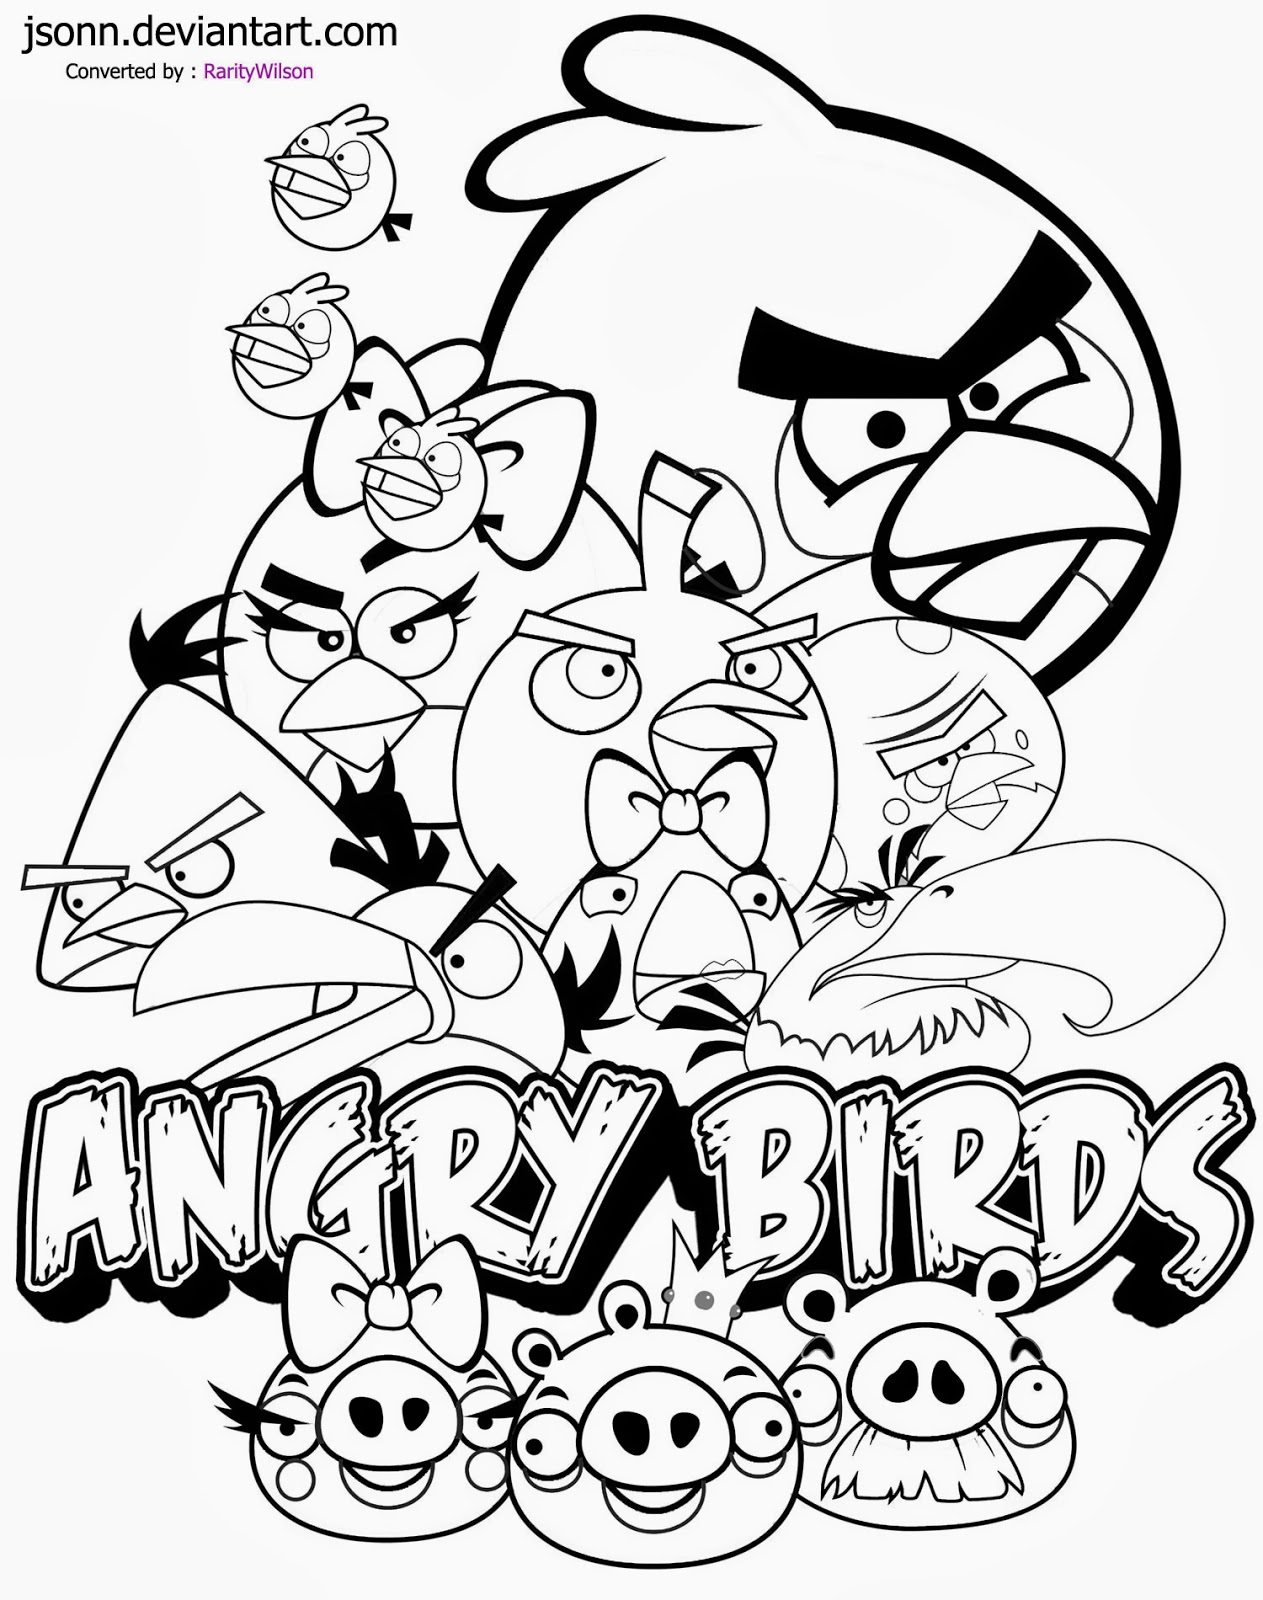 Co coloring pages to print of justin bieber - Coloring Games Free Online Games 10